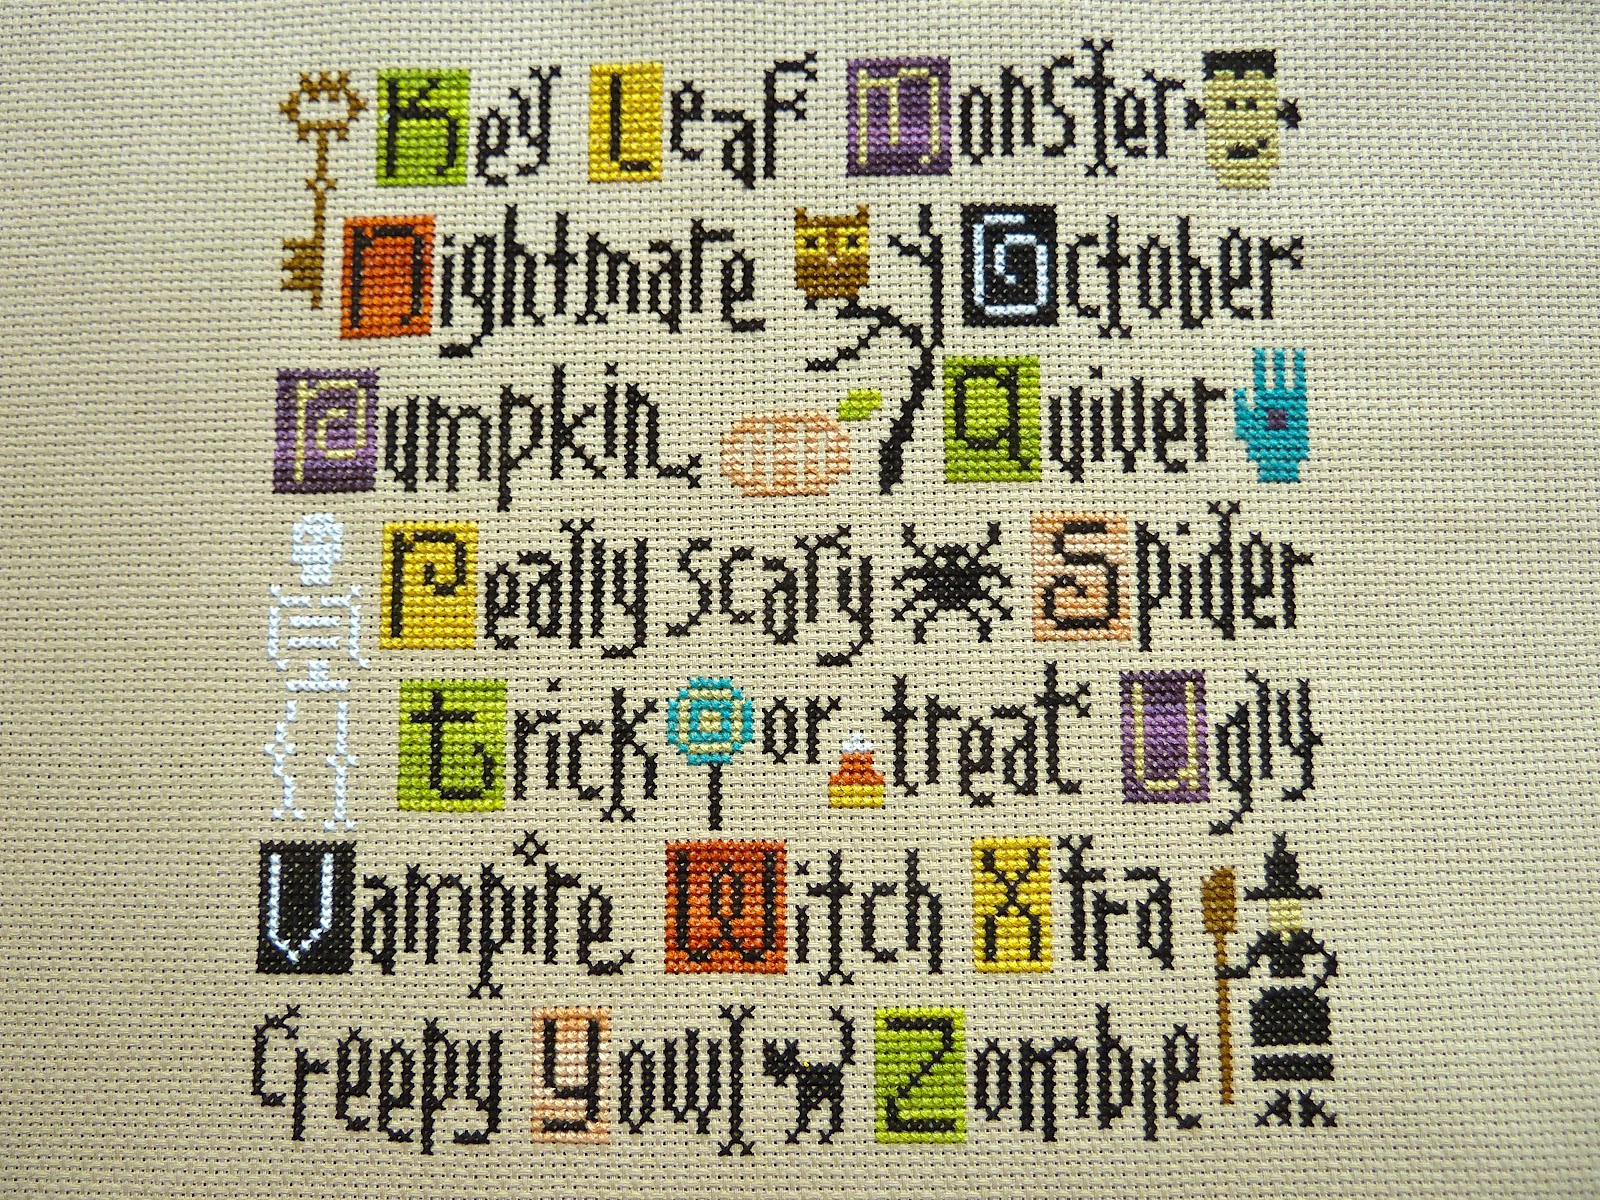 of this cross stitch just realized it was back in jan anyway i put this on my fal list for the 2nd quarter to hopefully get myself moving